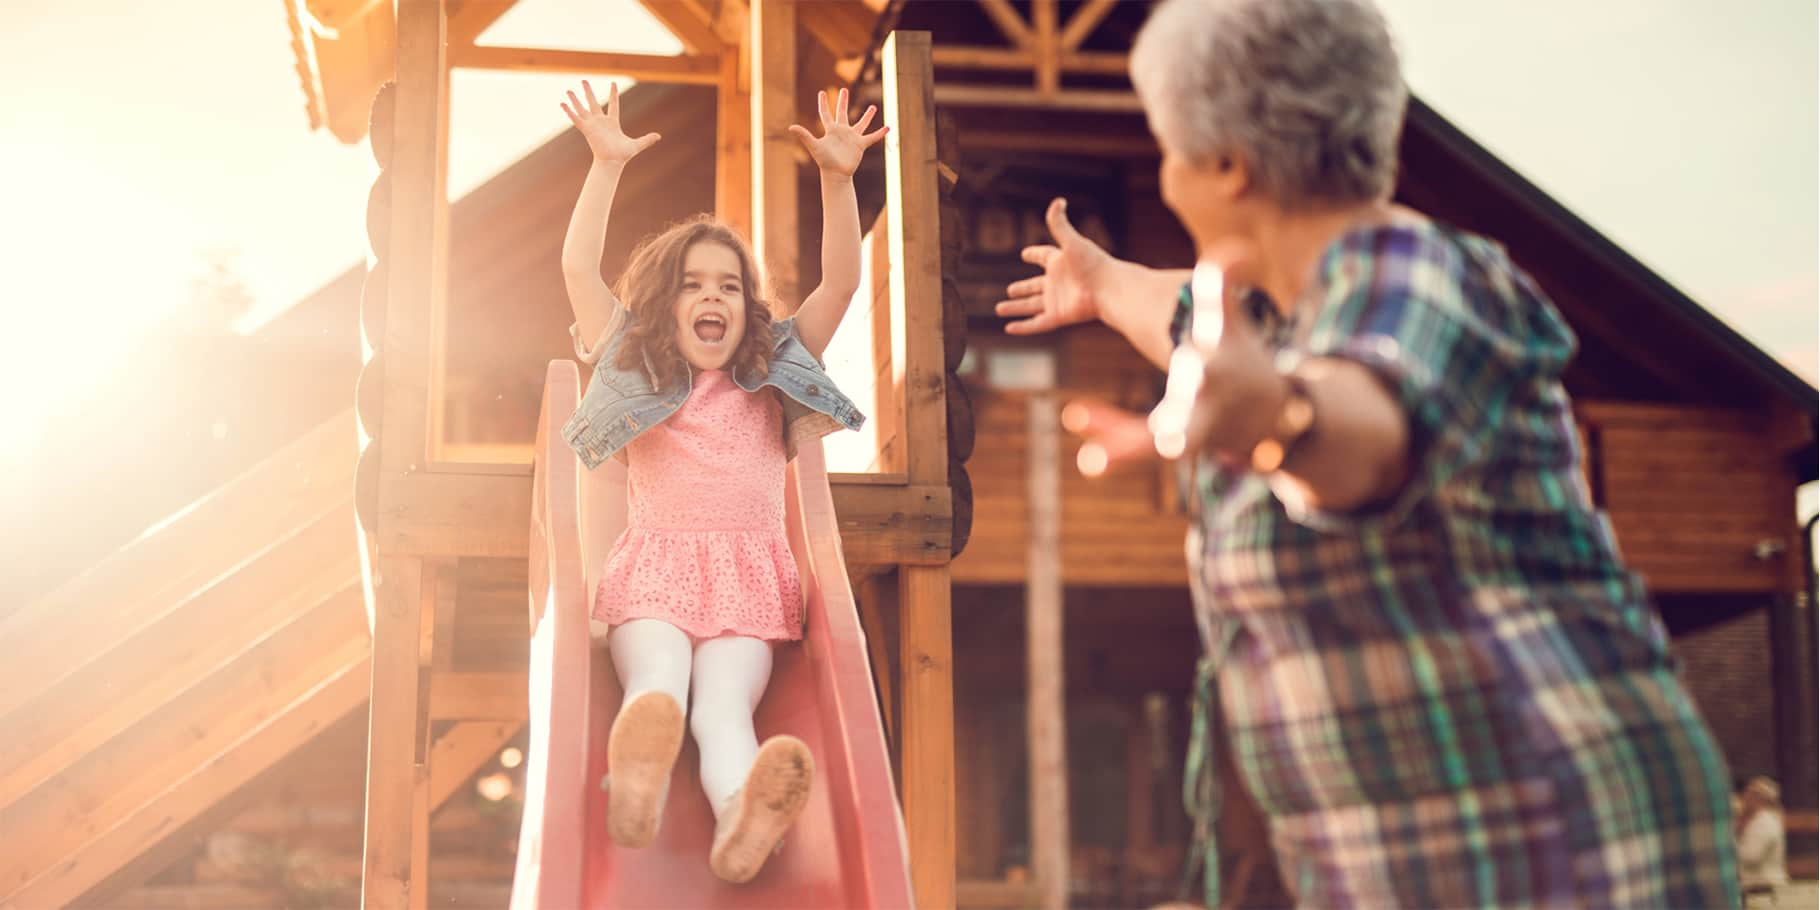 A young girl going down a slide with arms raised high and a grandmother at the bottom waiting to catch her.